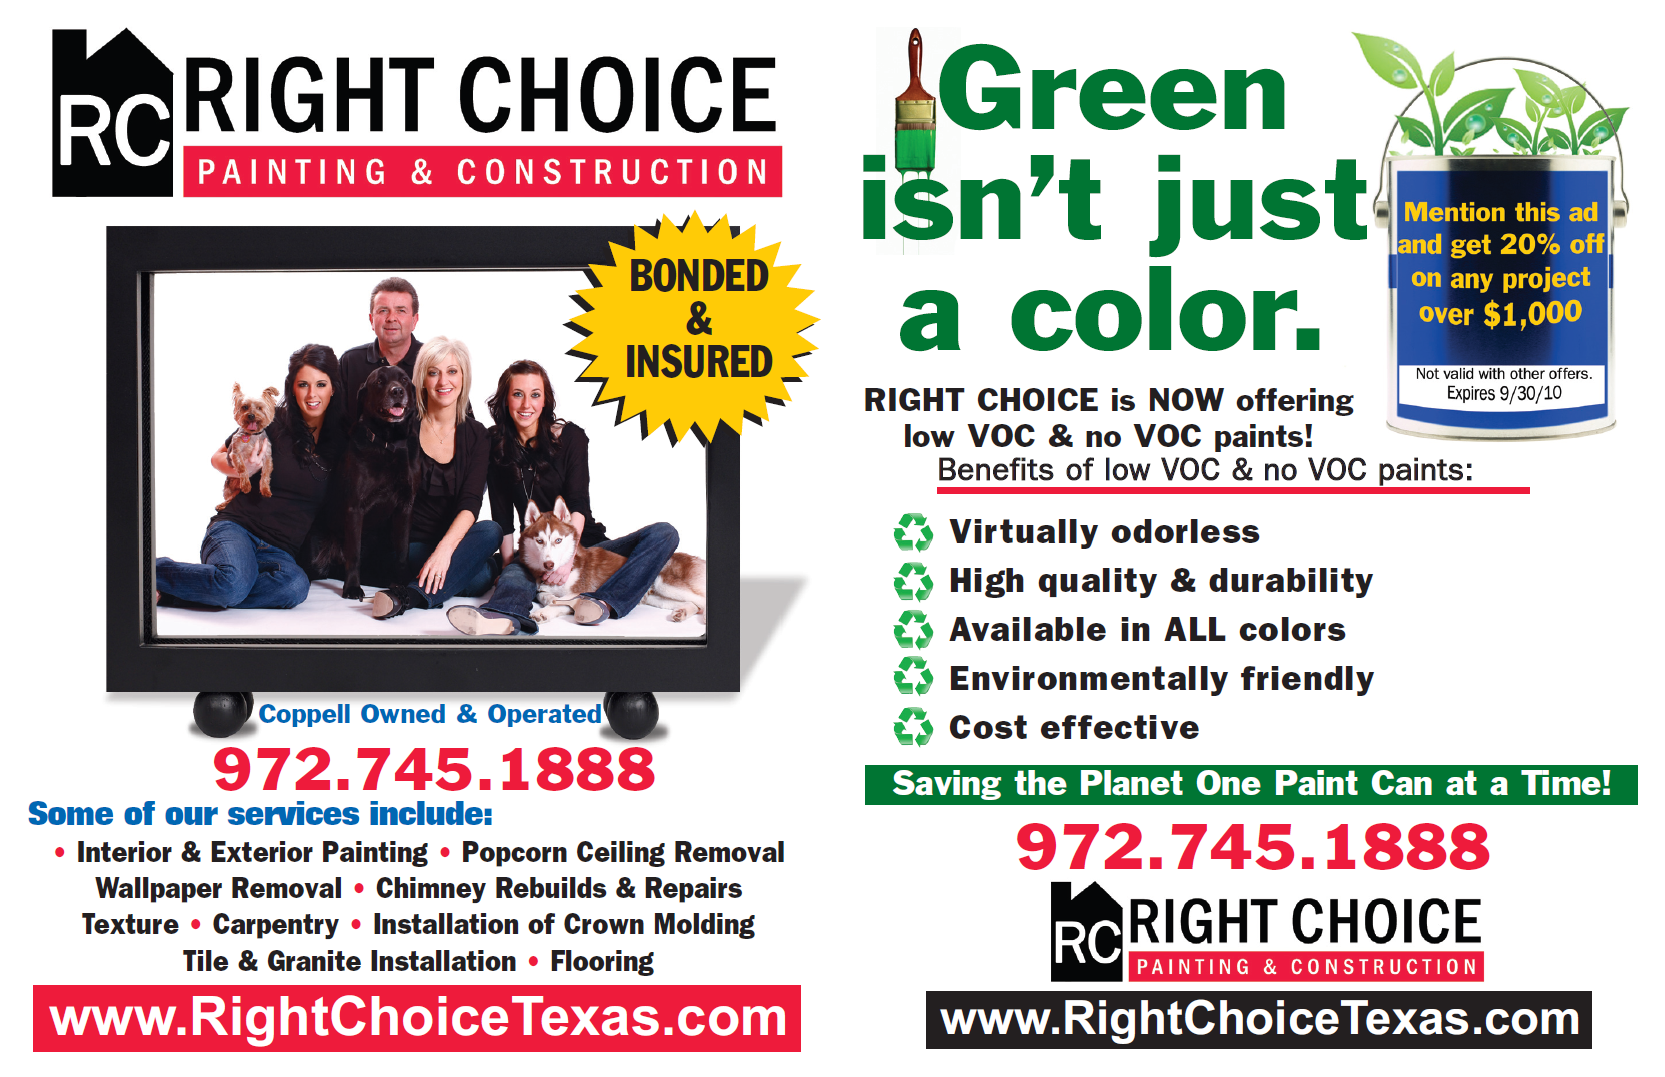 Right Choice Painting & Construction Green Campaign